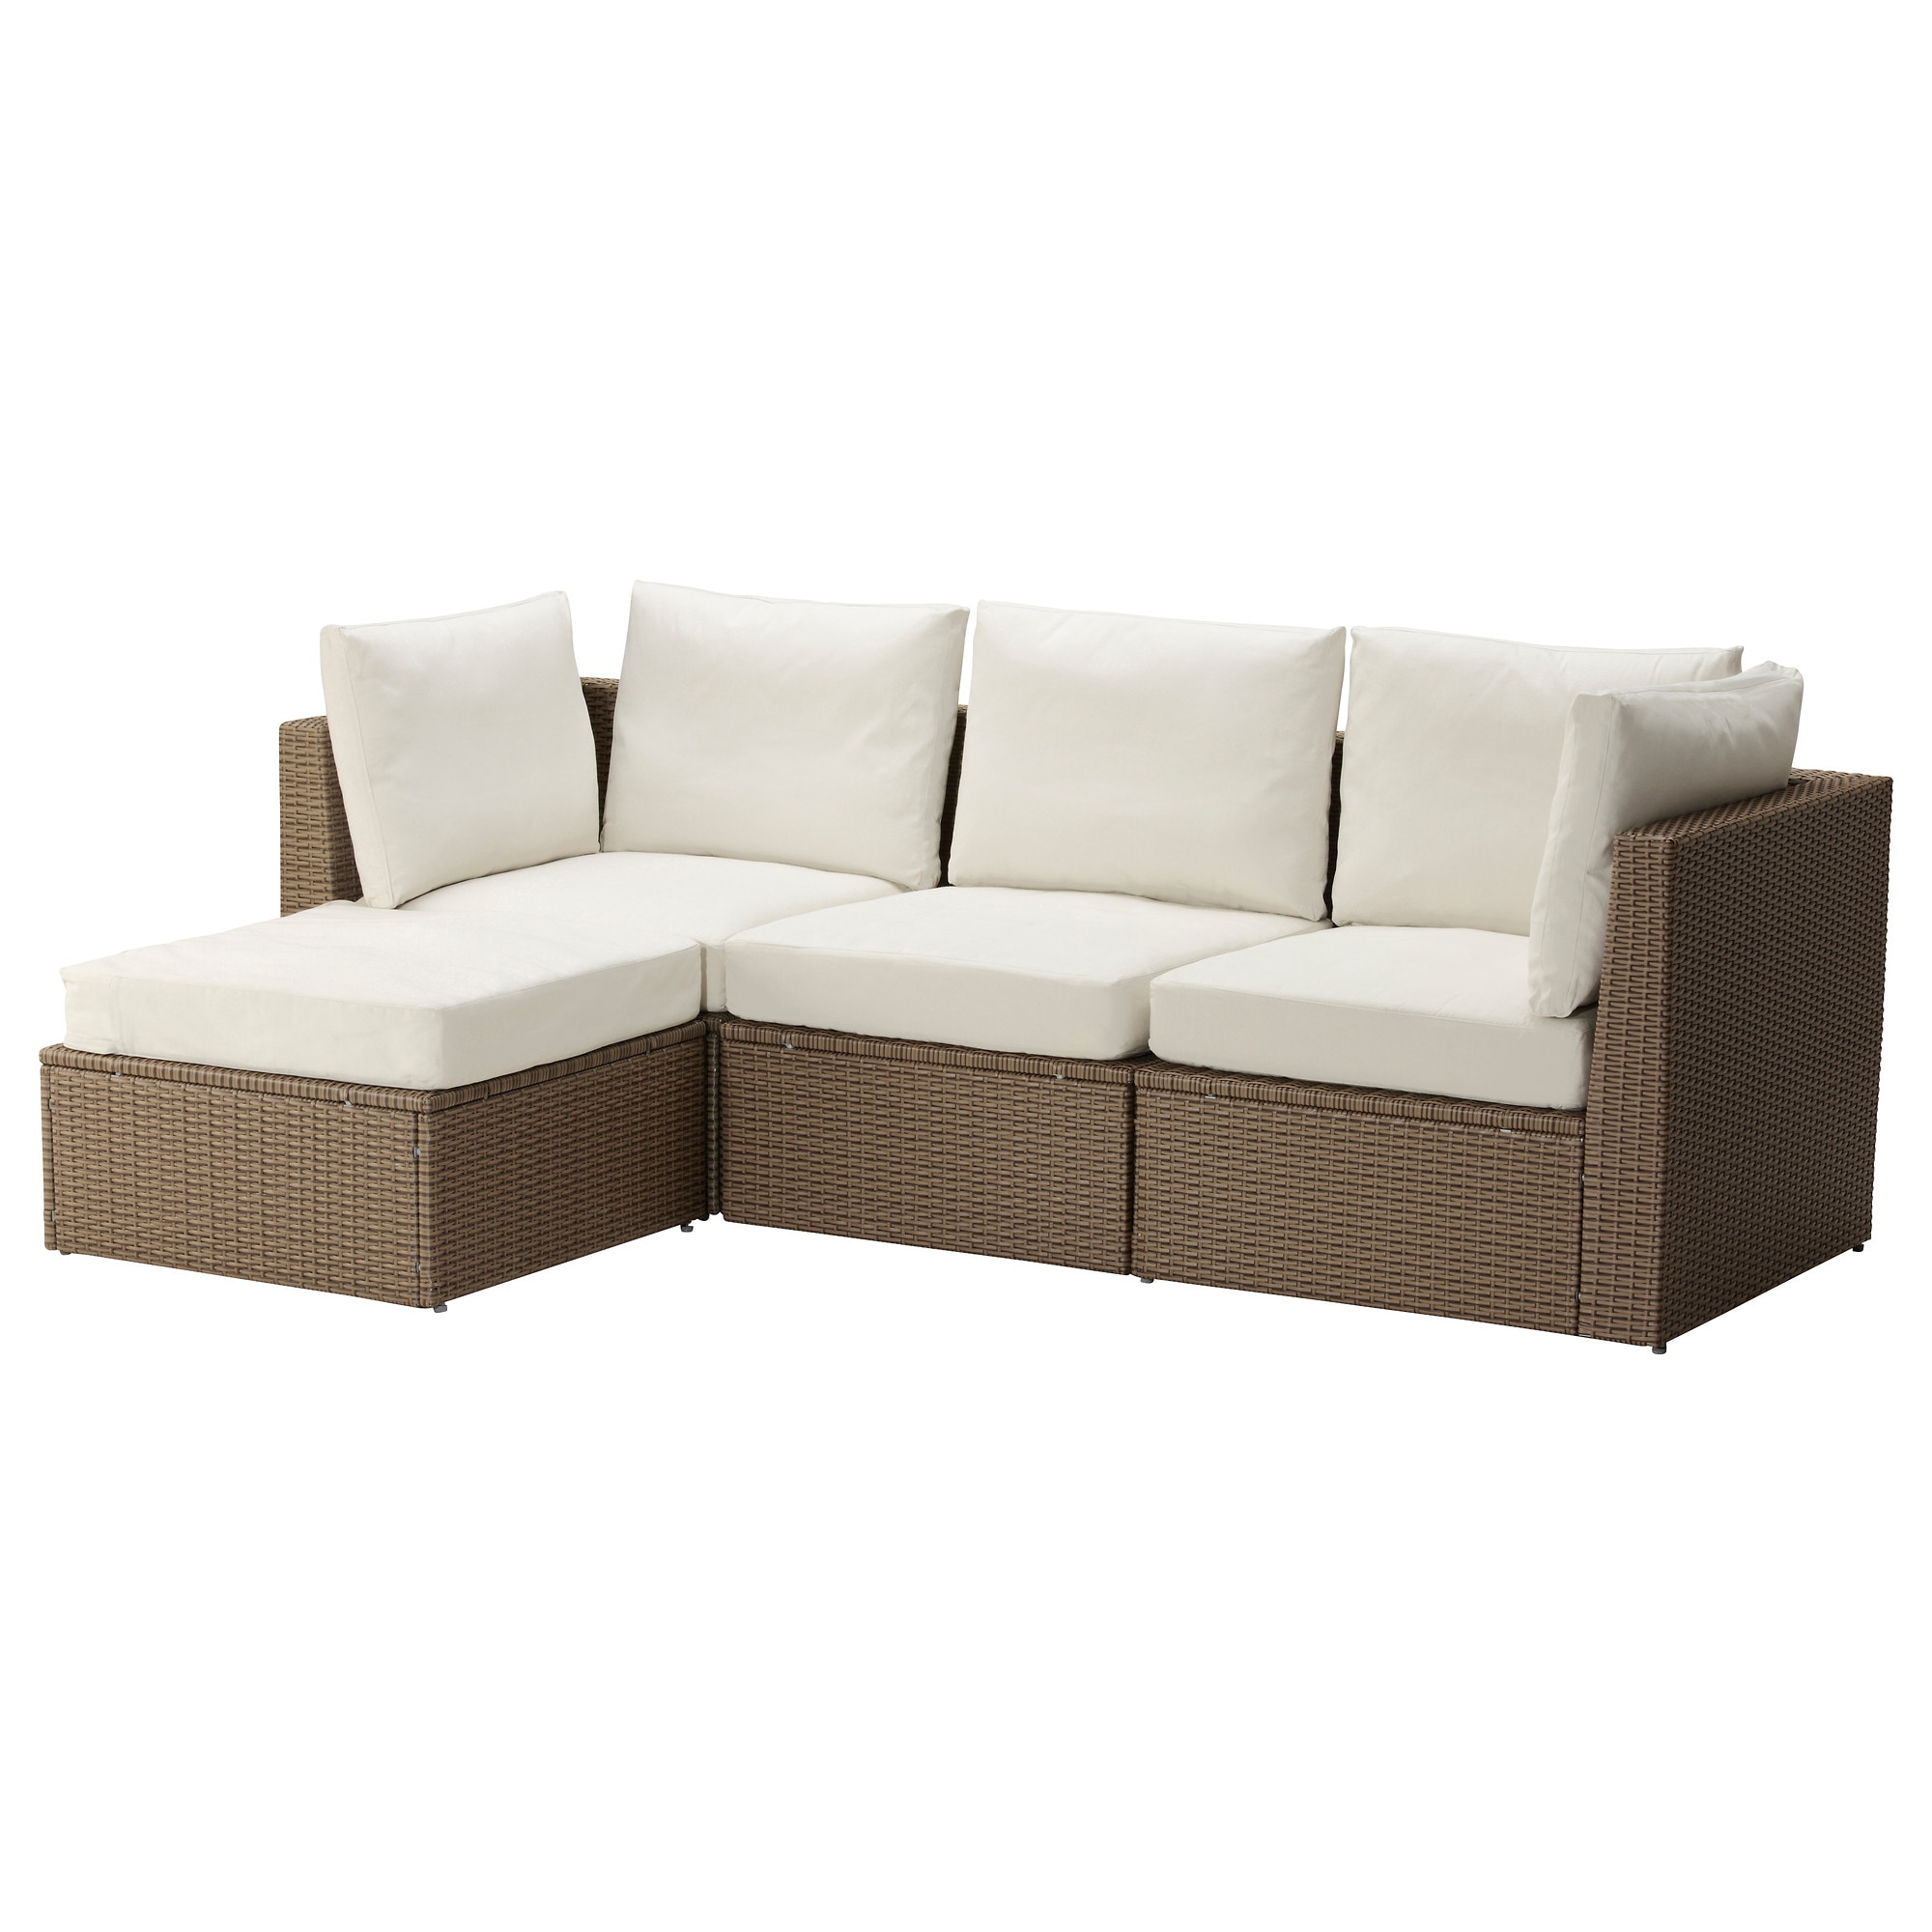 ARHOLMA 3 Seat Sofa With Footstool, Outdoor, Brown, Beige Depth: 76